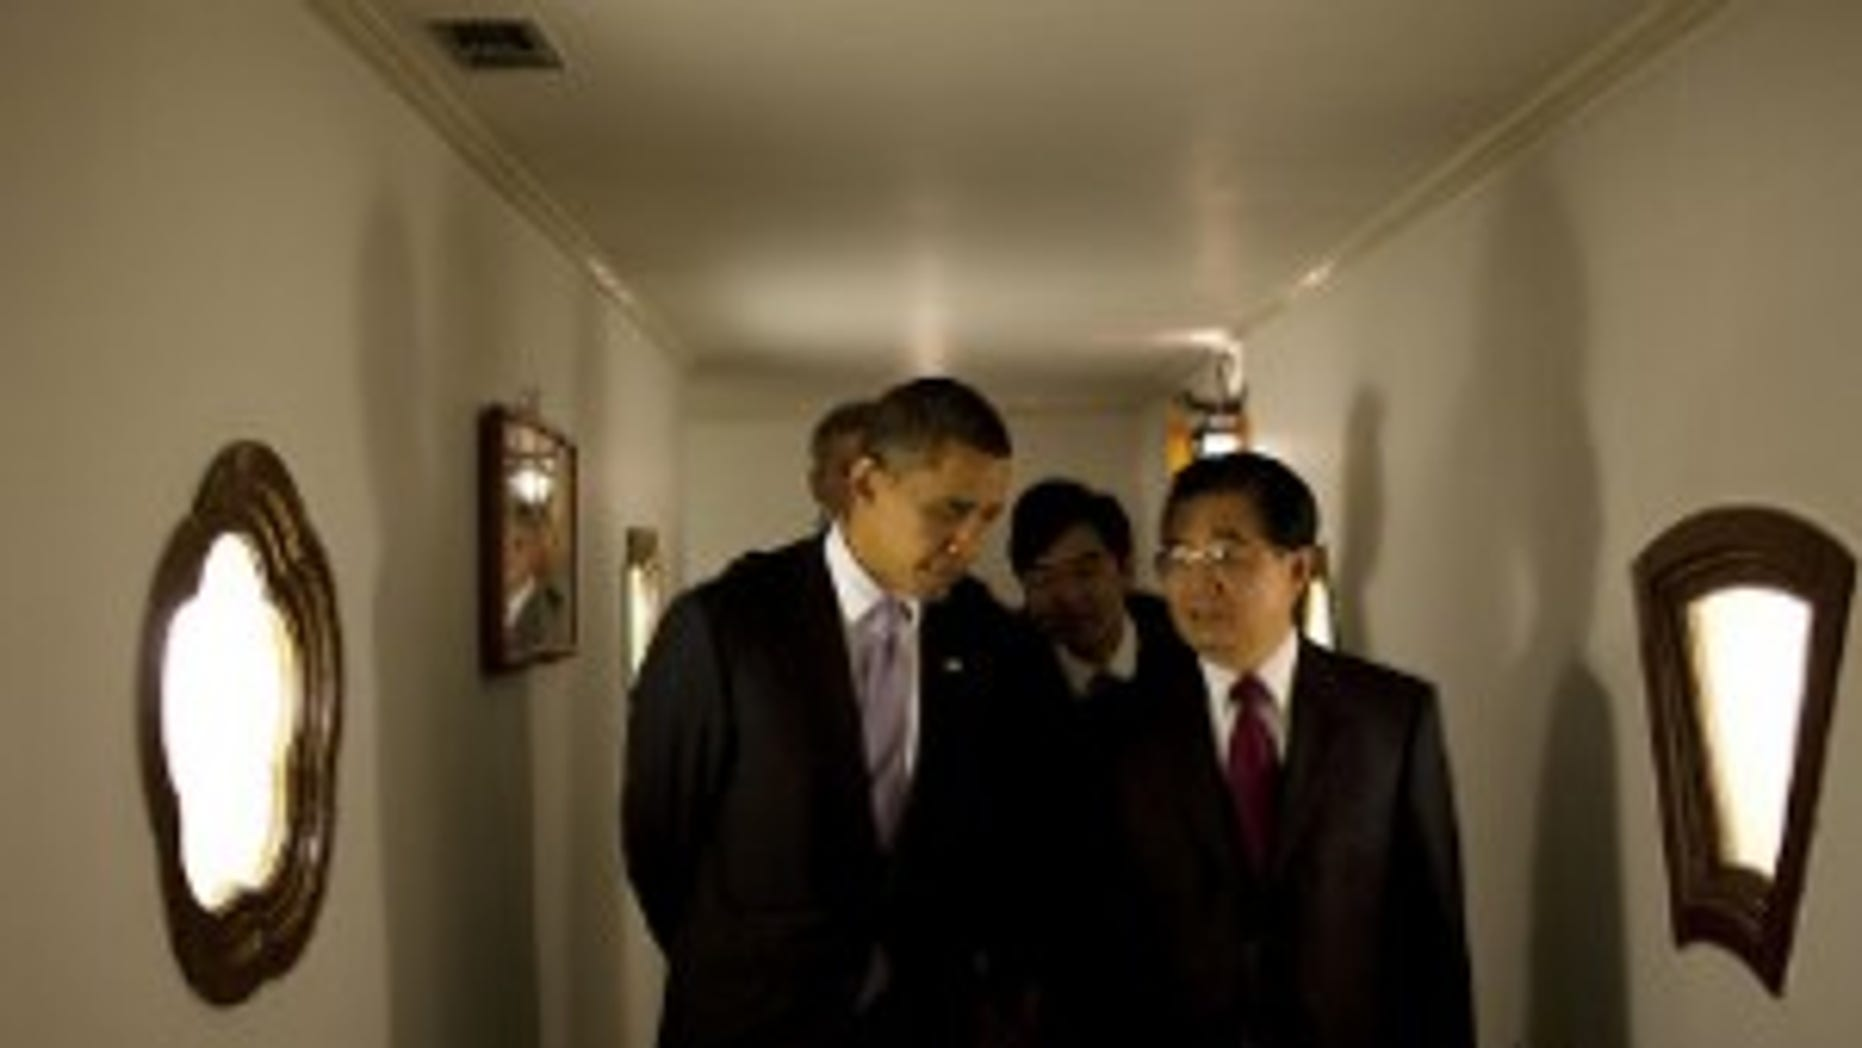 President Barack Obama walks with Chinese President Hu Jintao at Diaoyutai State Guest House in Beijing, China, Nov. 16, 2009. (Official White House Photo by Pete Souza)